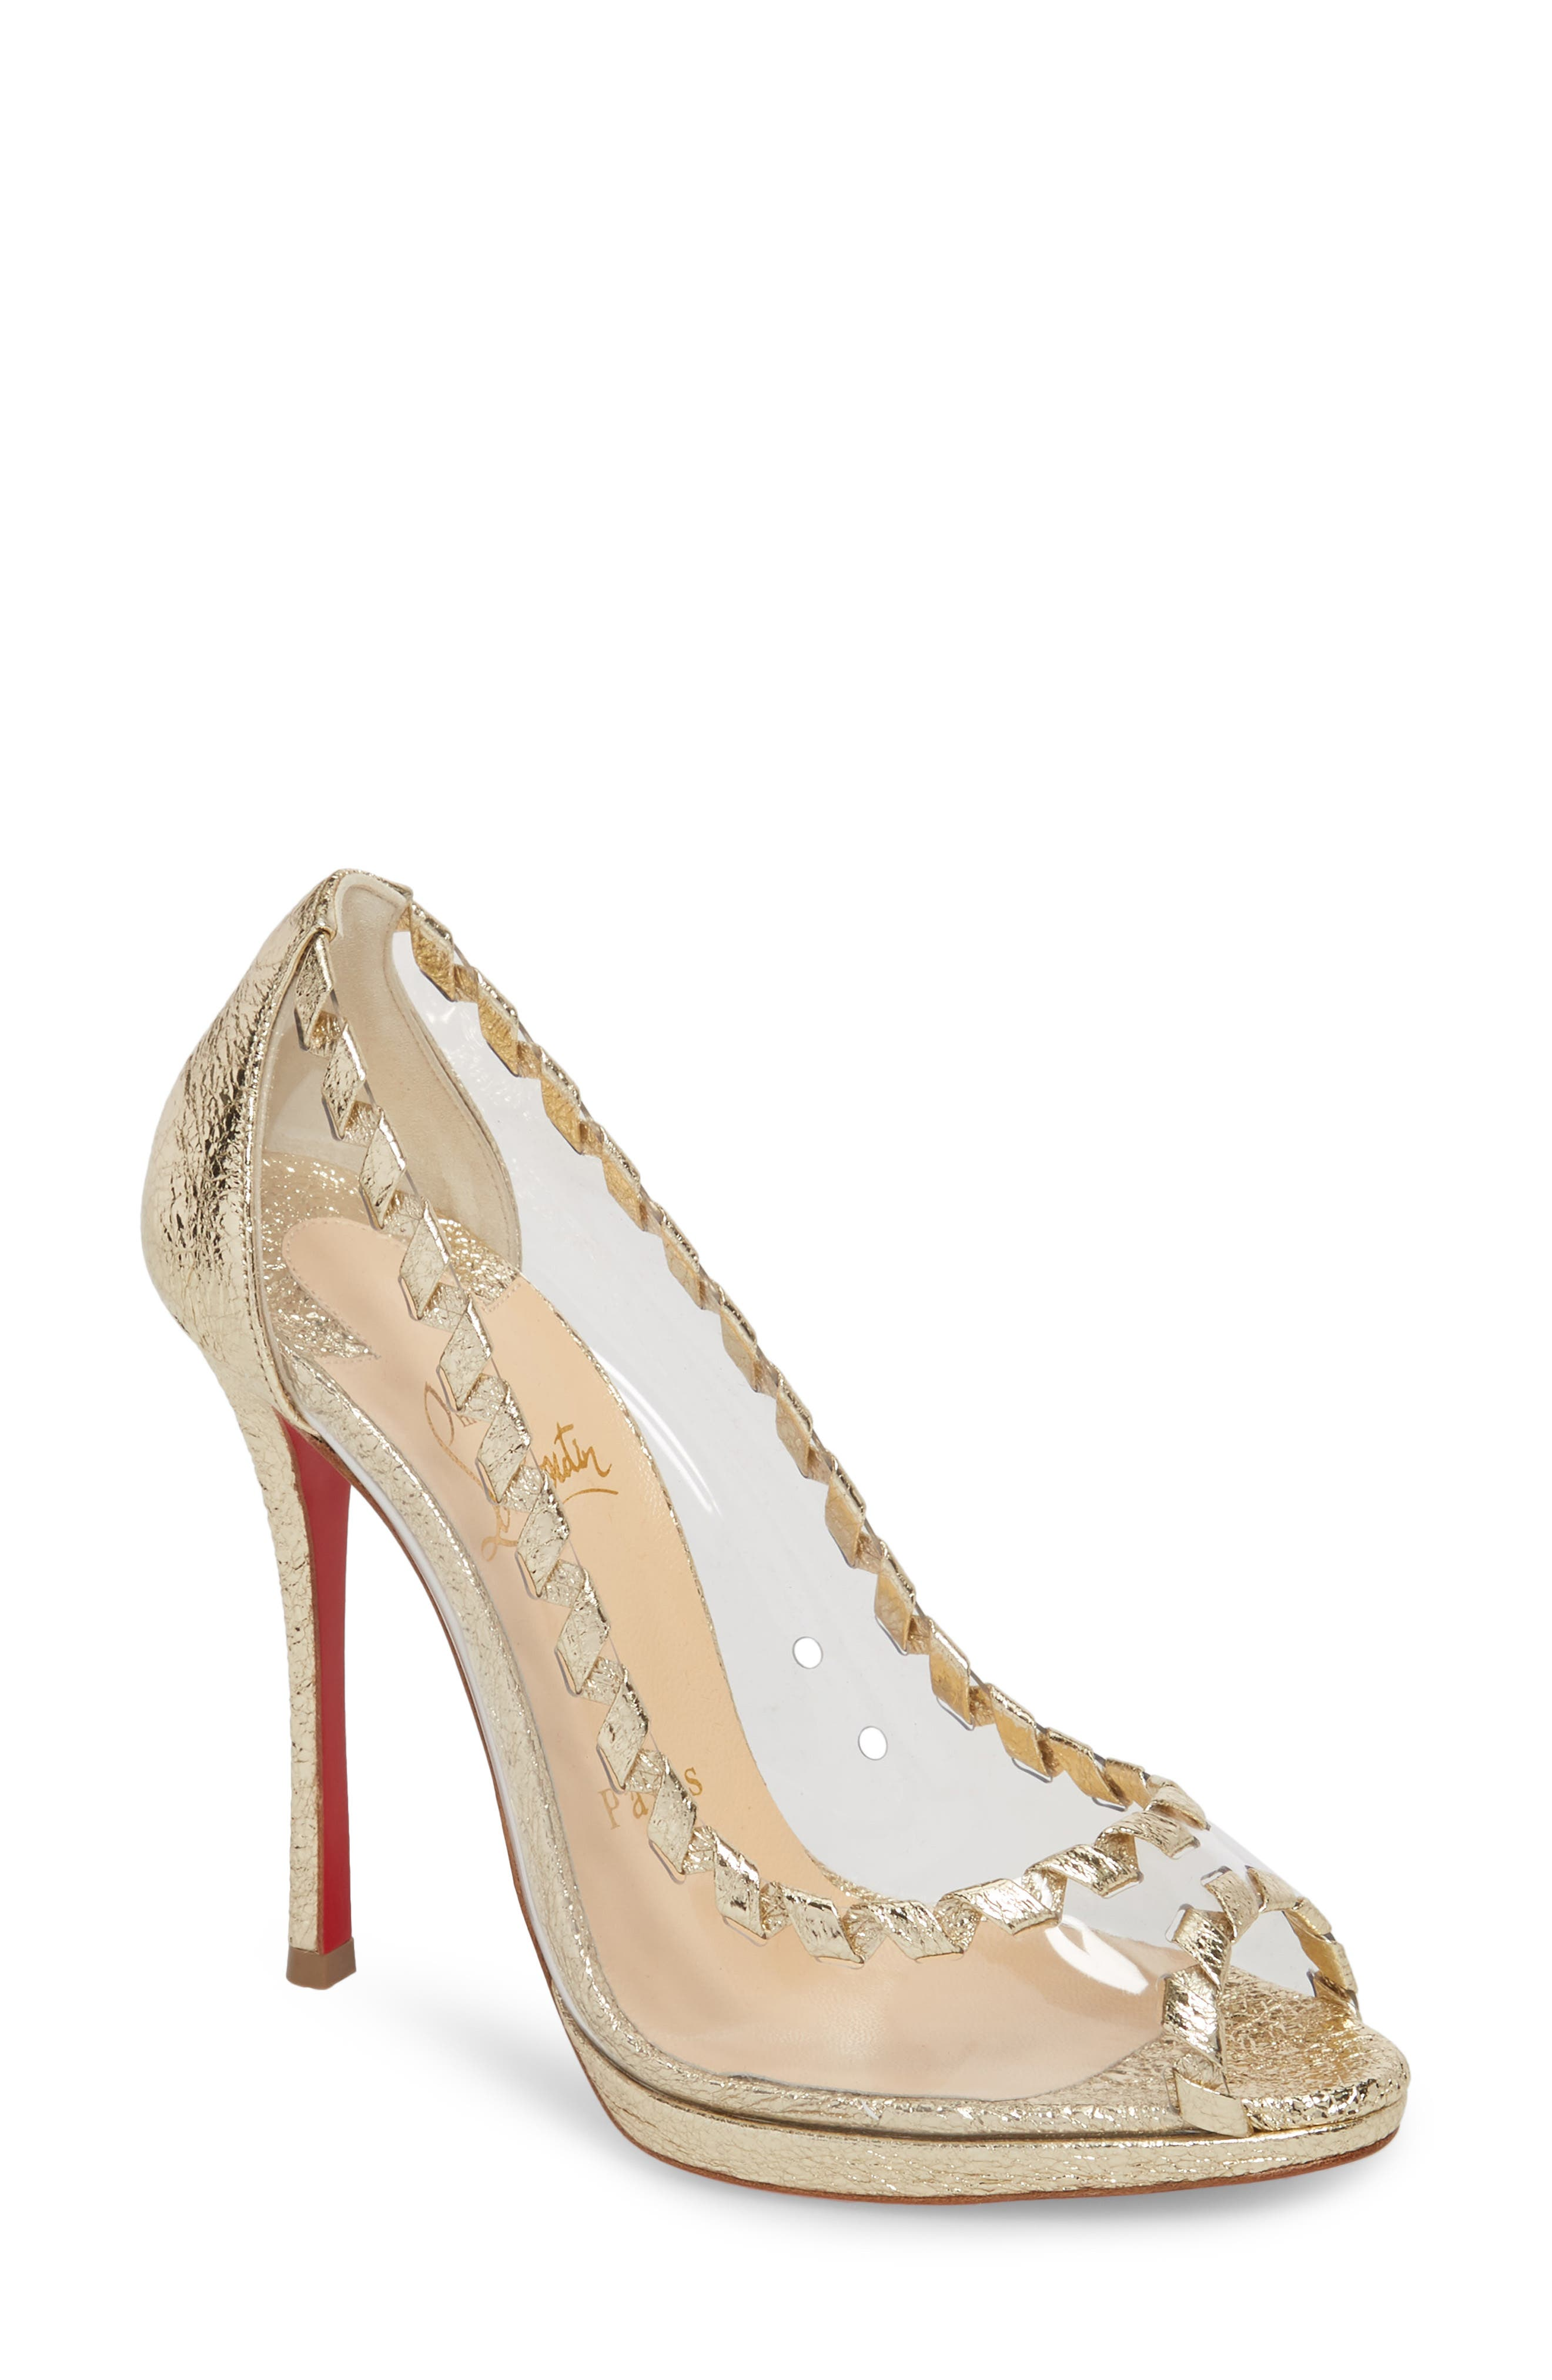 Christian Louboutin Hargaret Whipstitched Pump (Women)